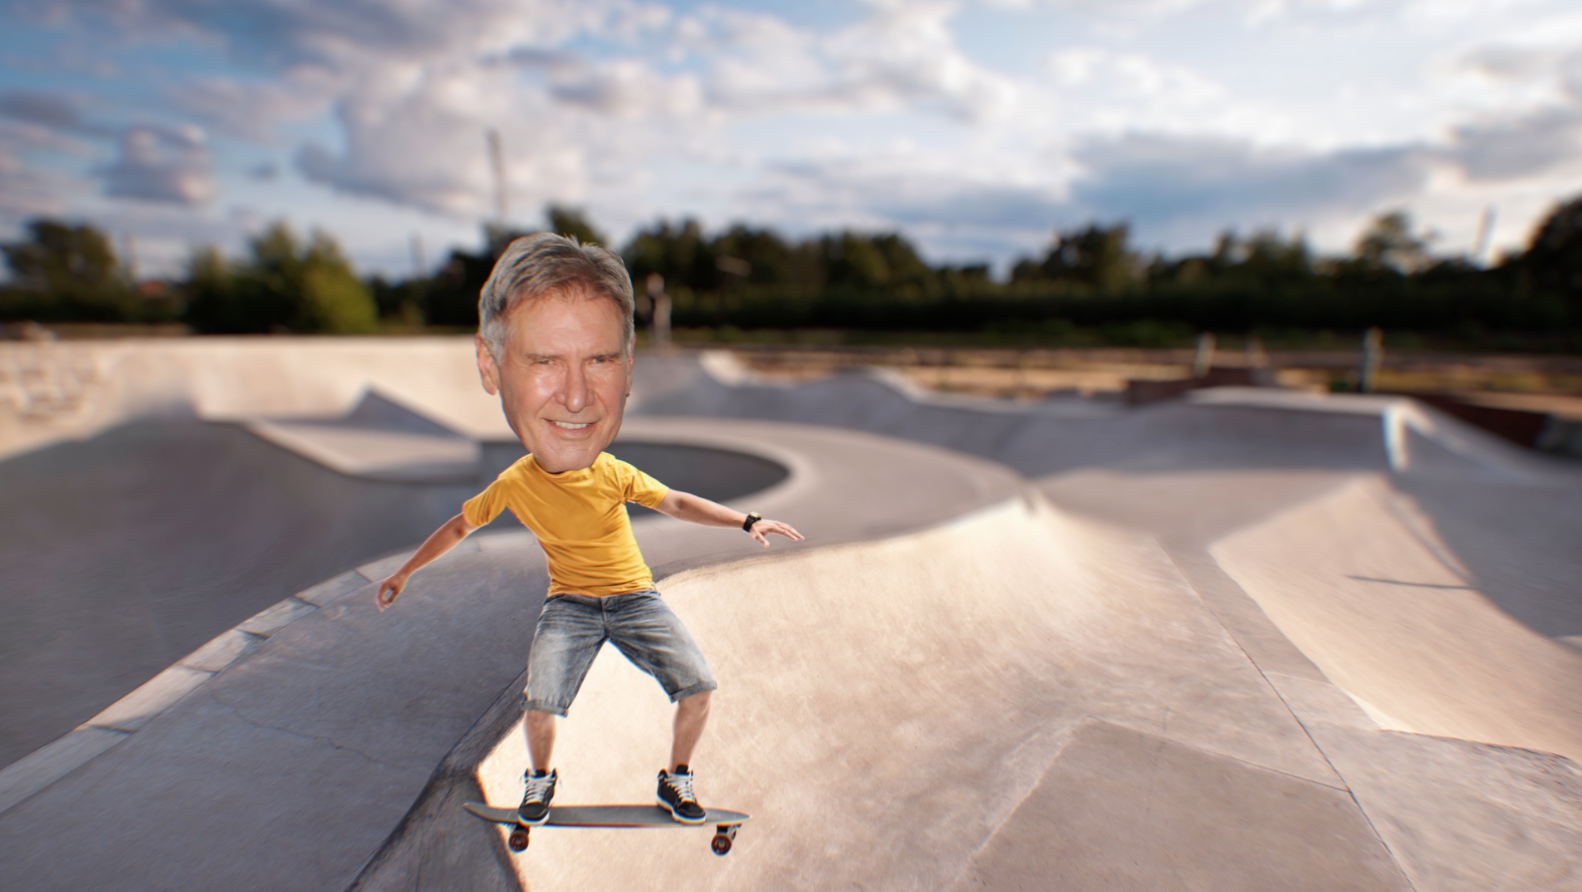 HARRISON FORD ON A SKATEBOARD